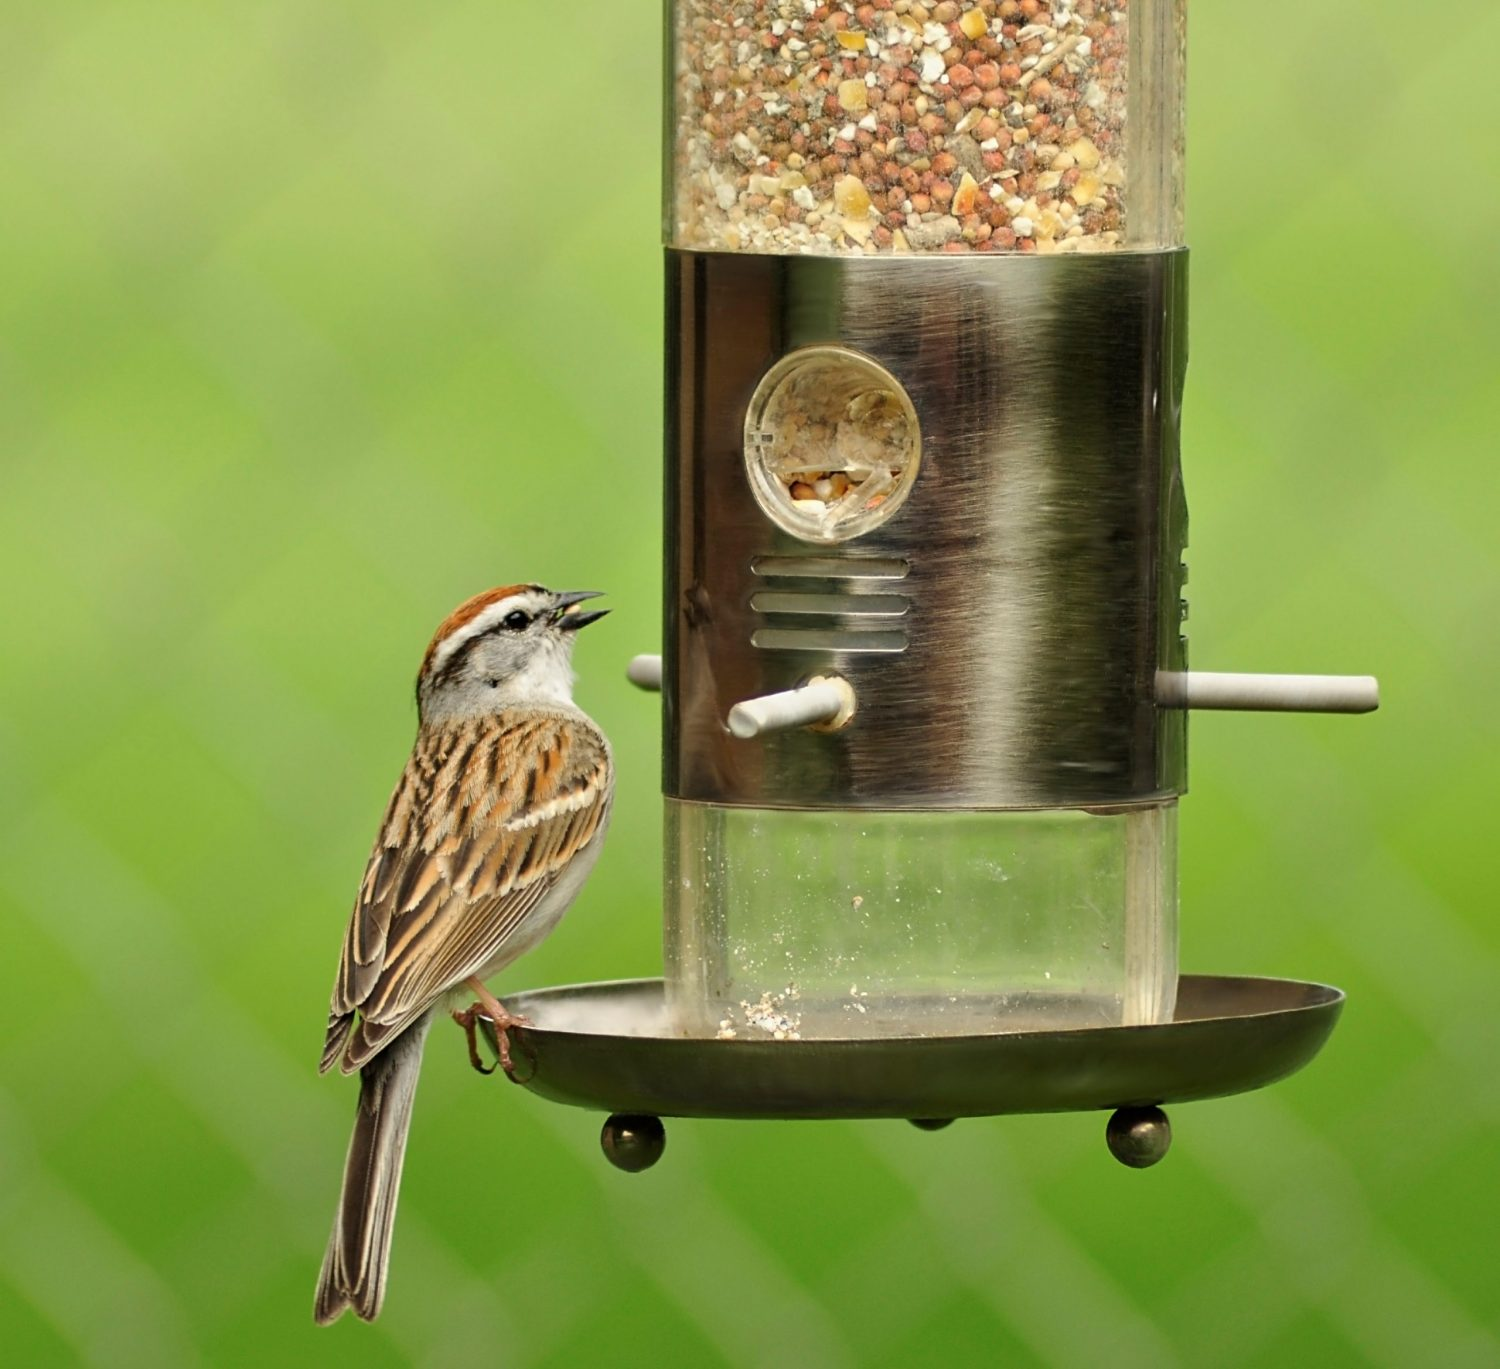 Bird Feeder - Help residents stay active at www.dementiaworkshop.co.uk